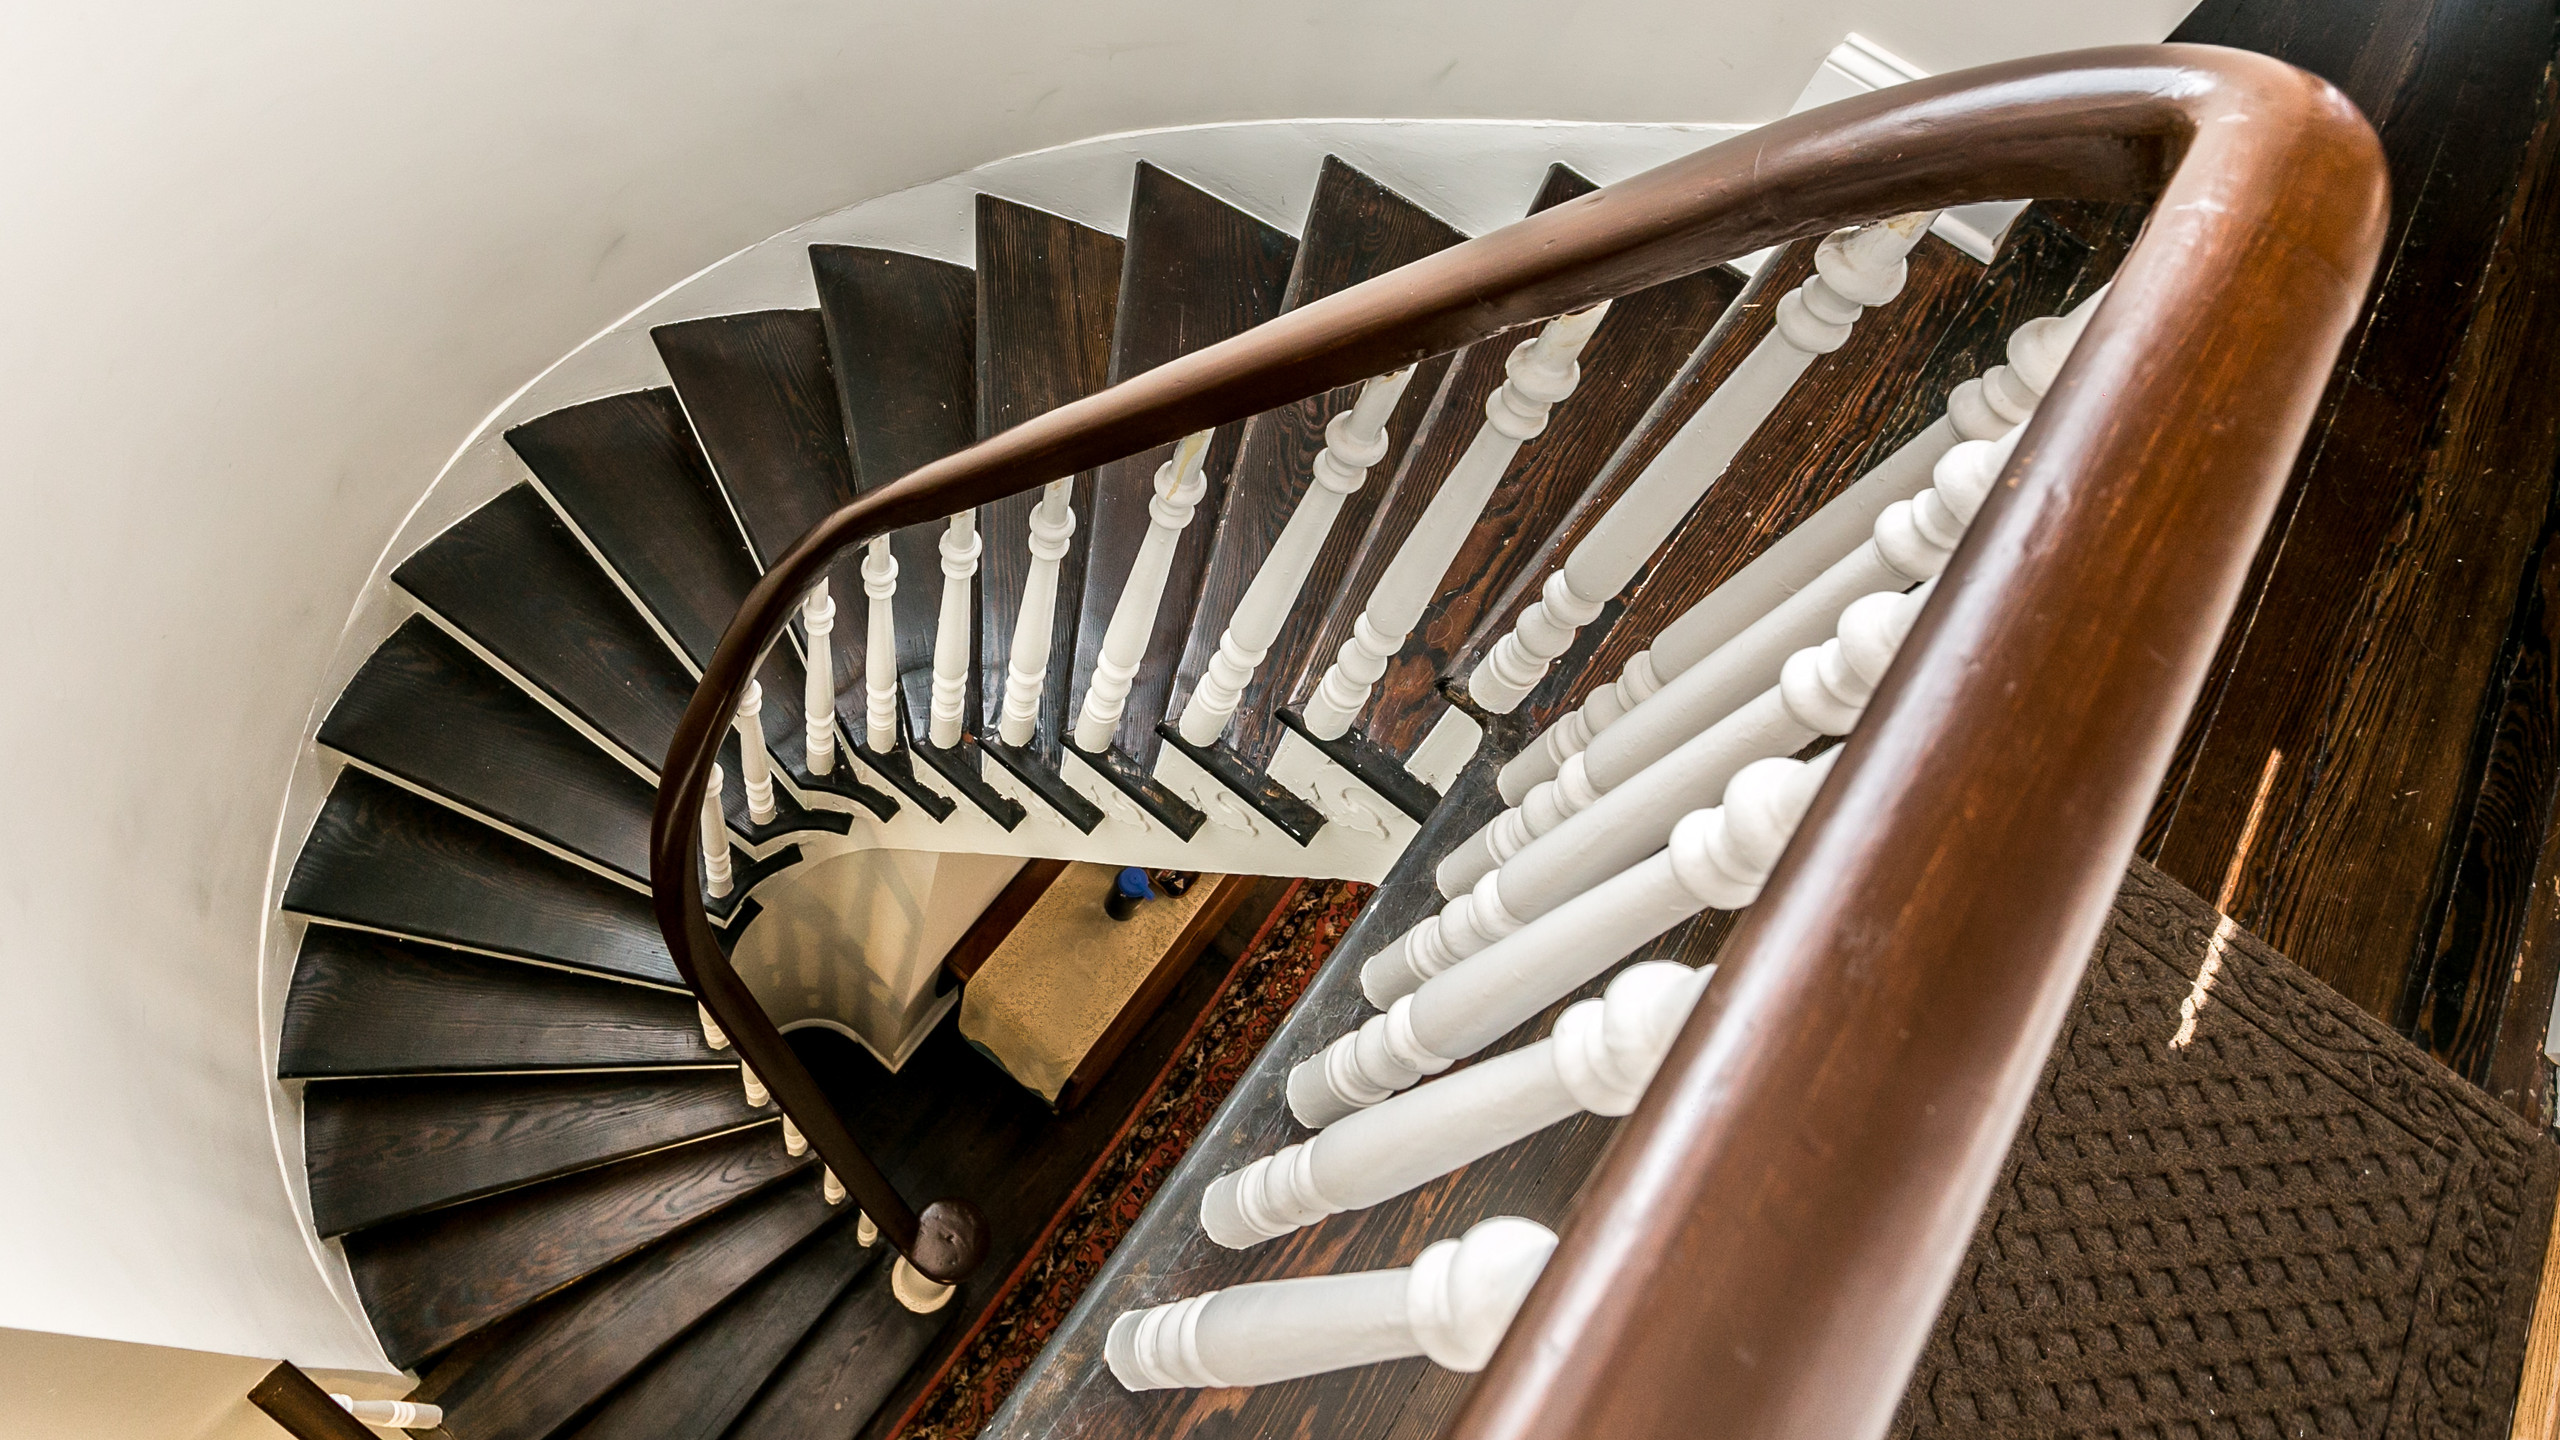 Fantastic stairs!